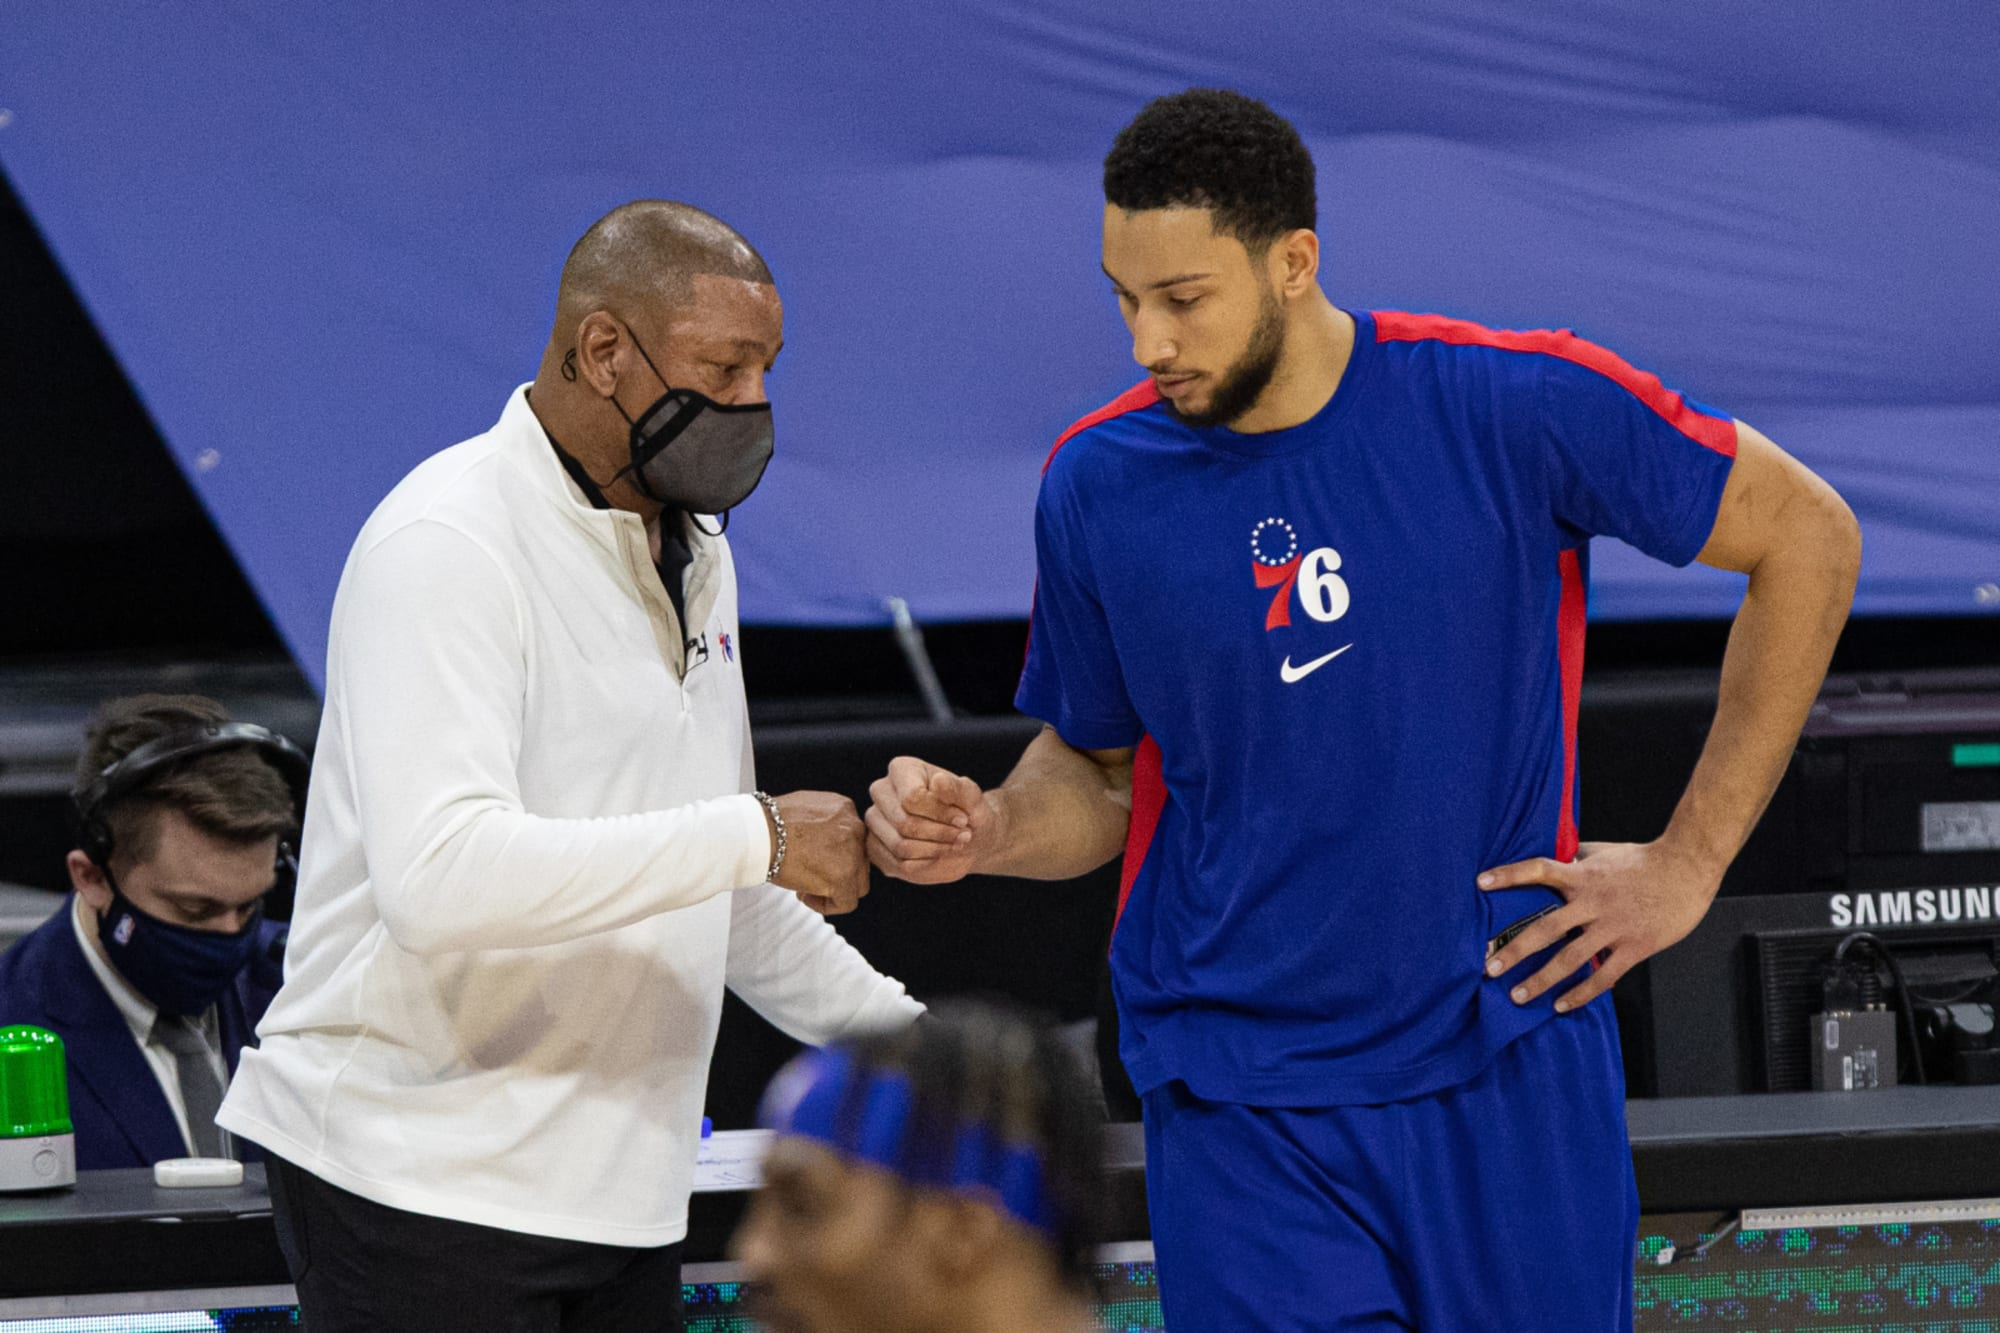 Can Sixers win modern era championship with old school identity?